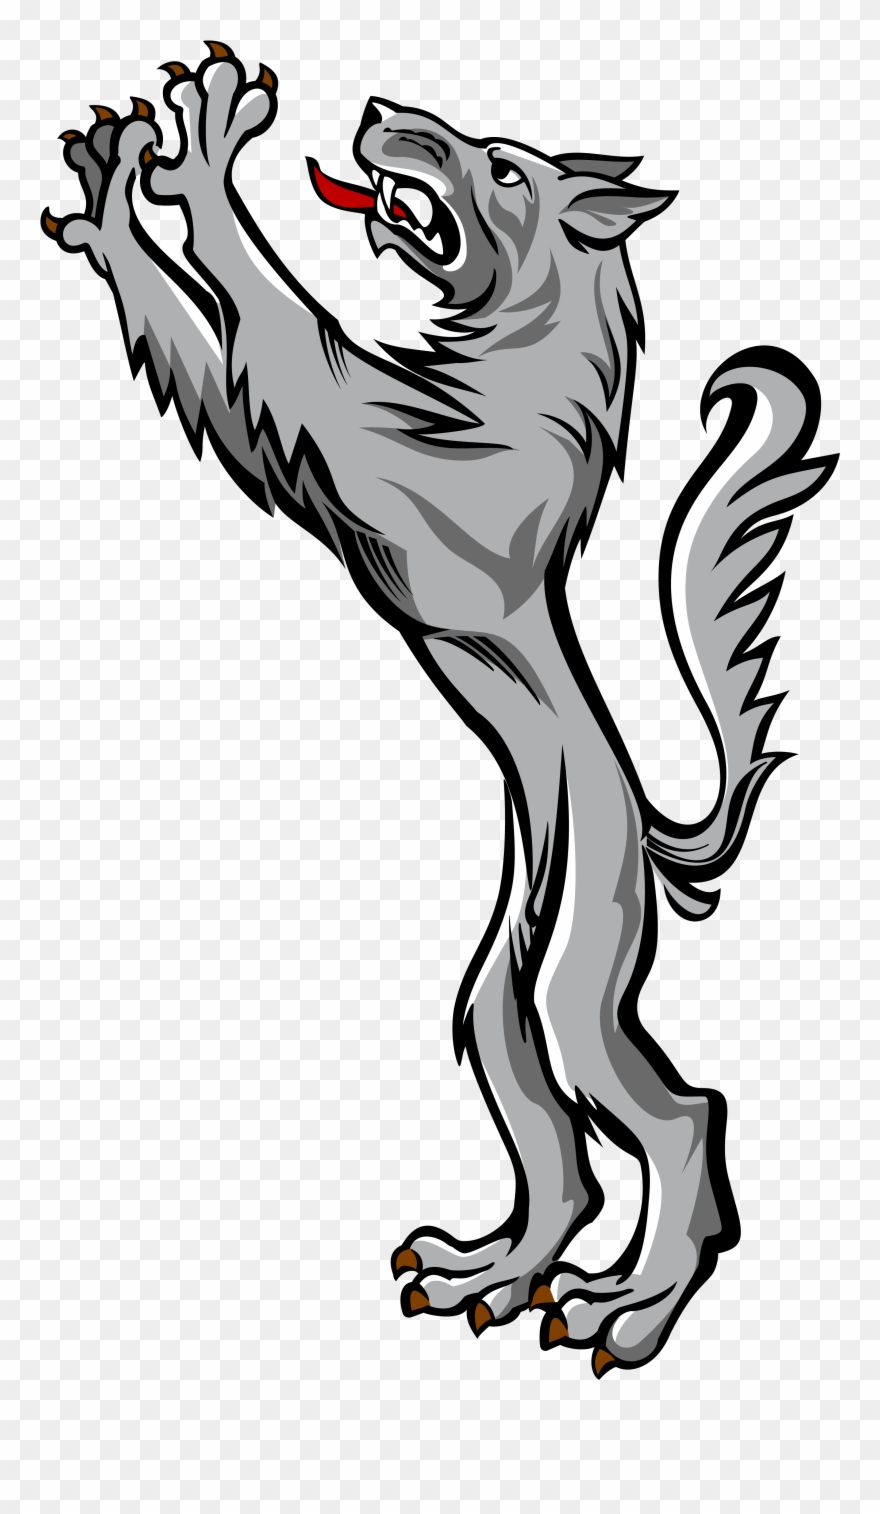 Wolves familys clipart clip art free download Wolf - Wolves In Family Crests Clipart (#986218) - PinClipart clip art free download